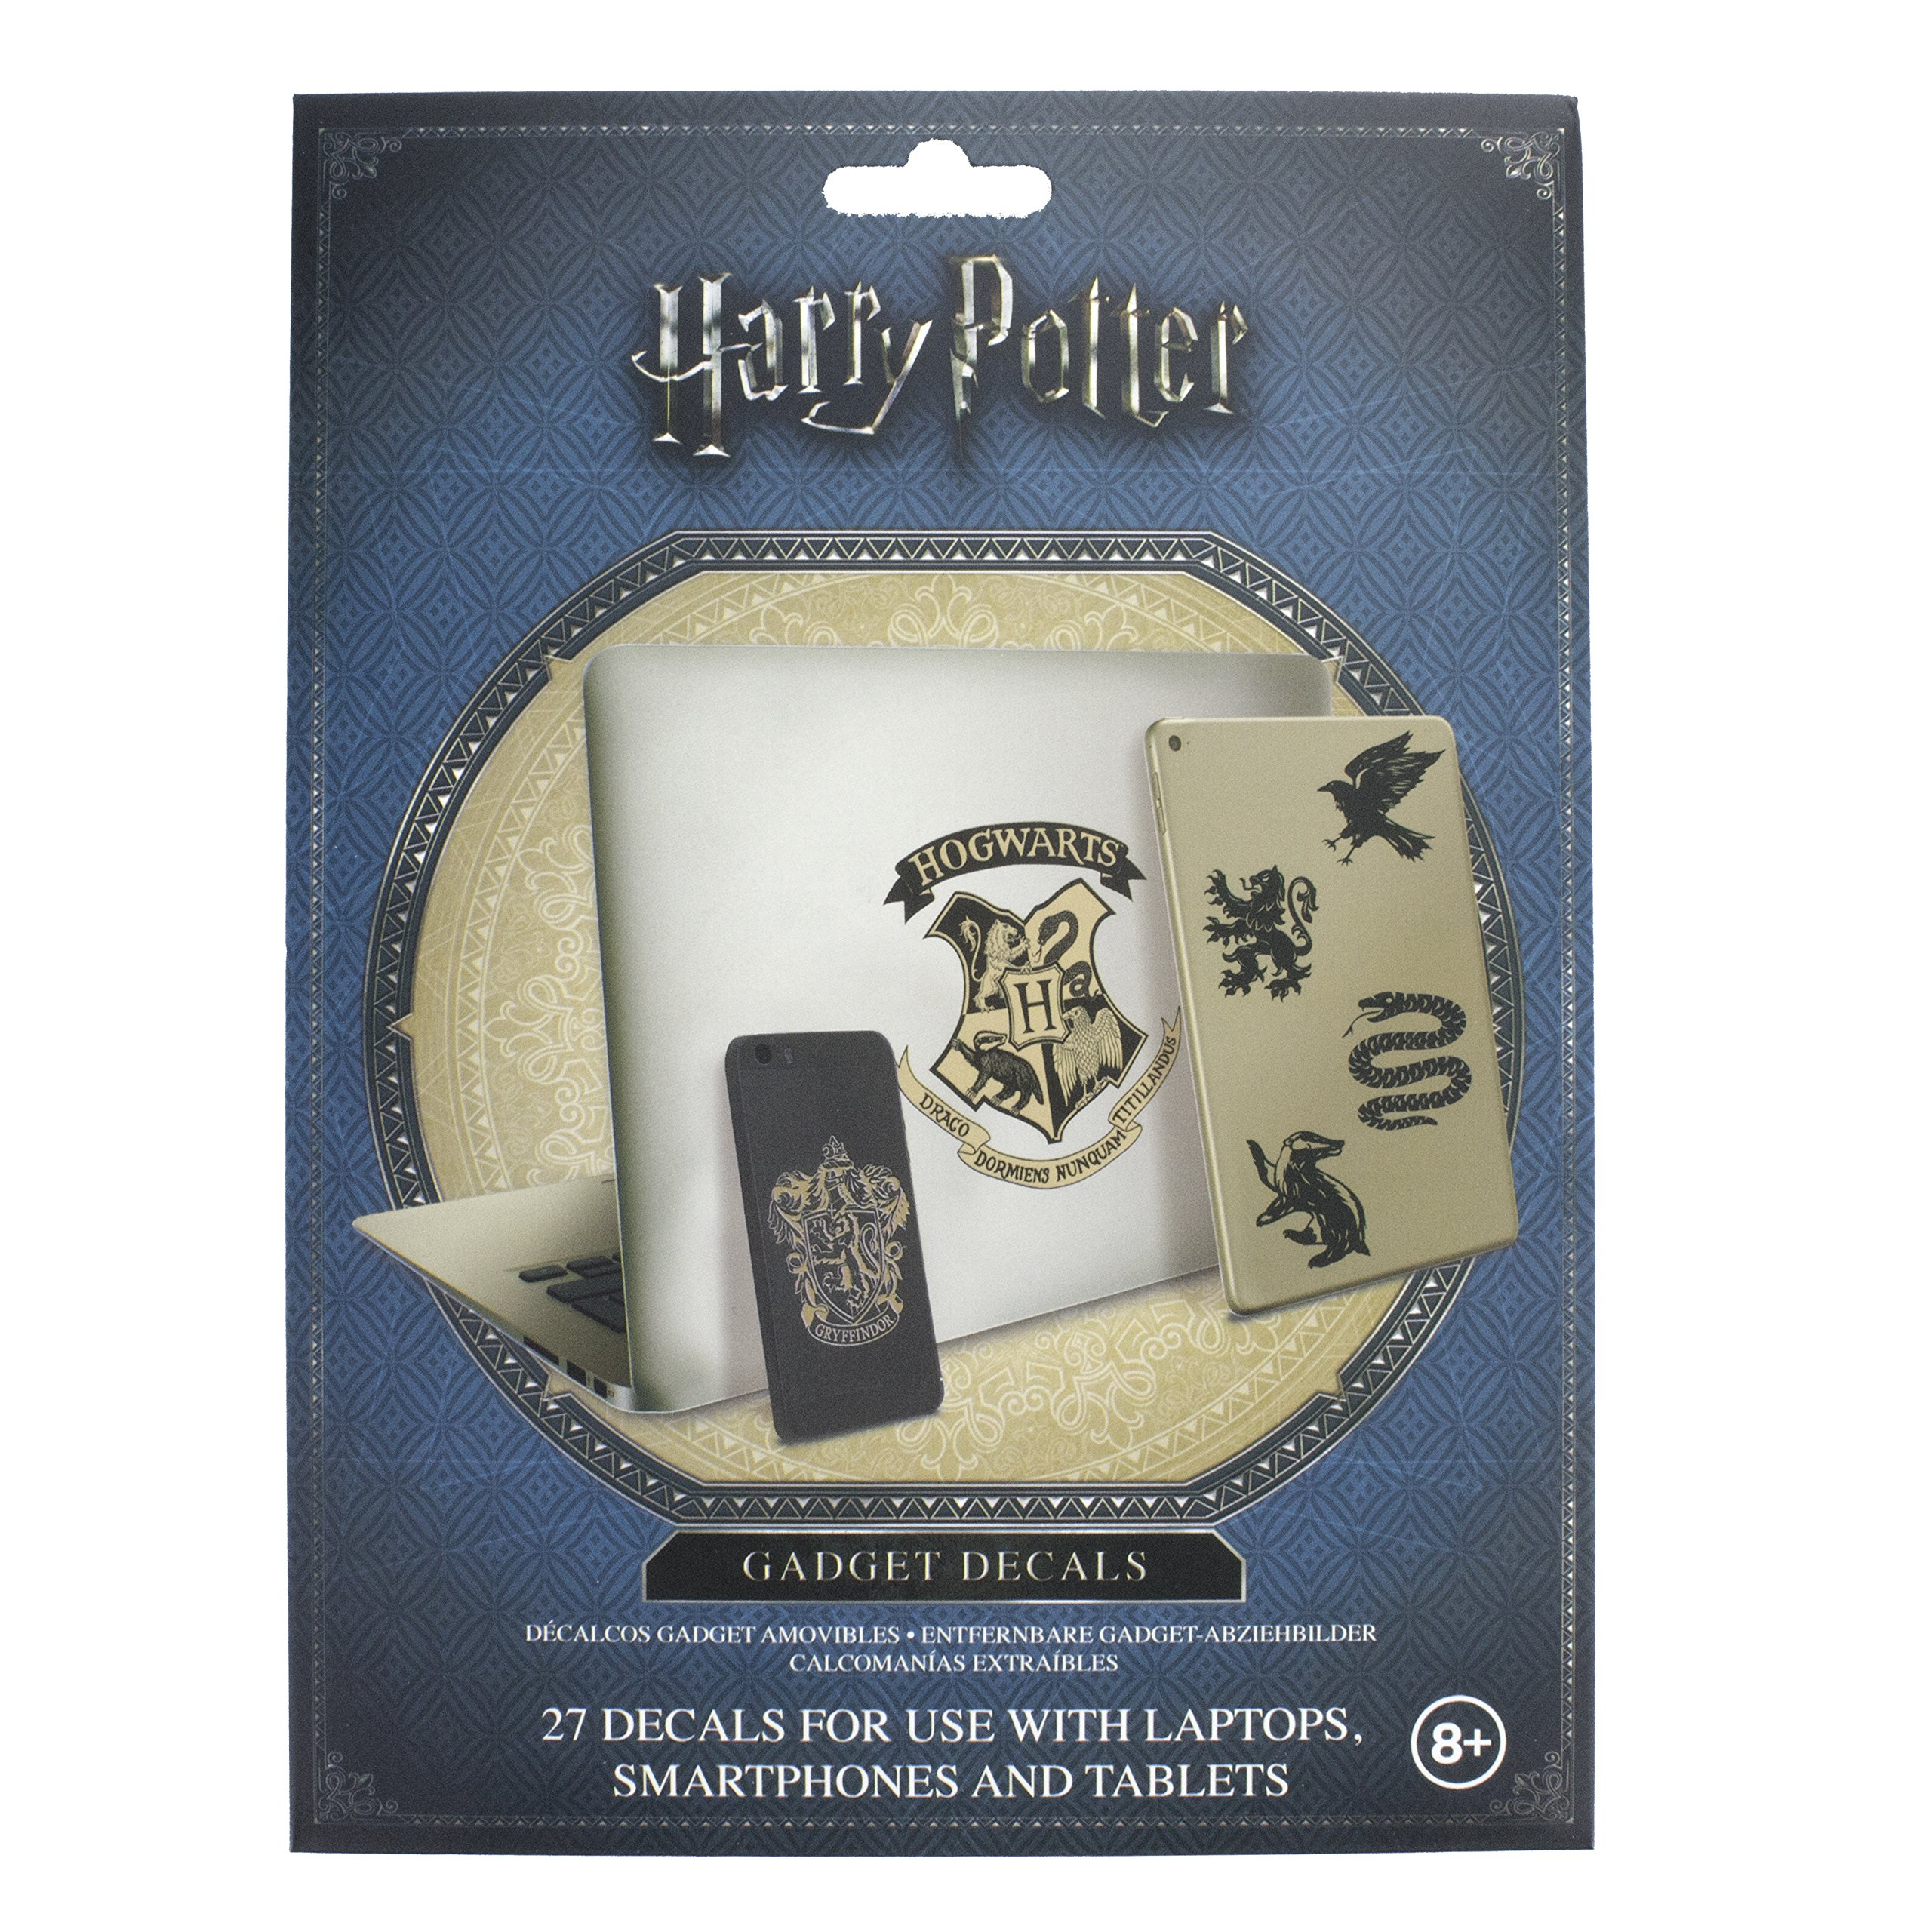 HARRY POTTER Gadget Decalcomanie Riutilizzabile